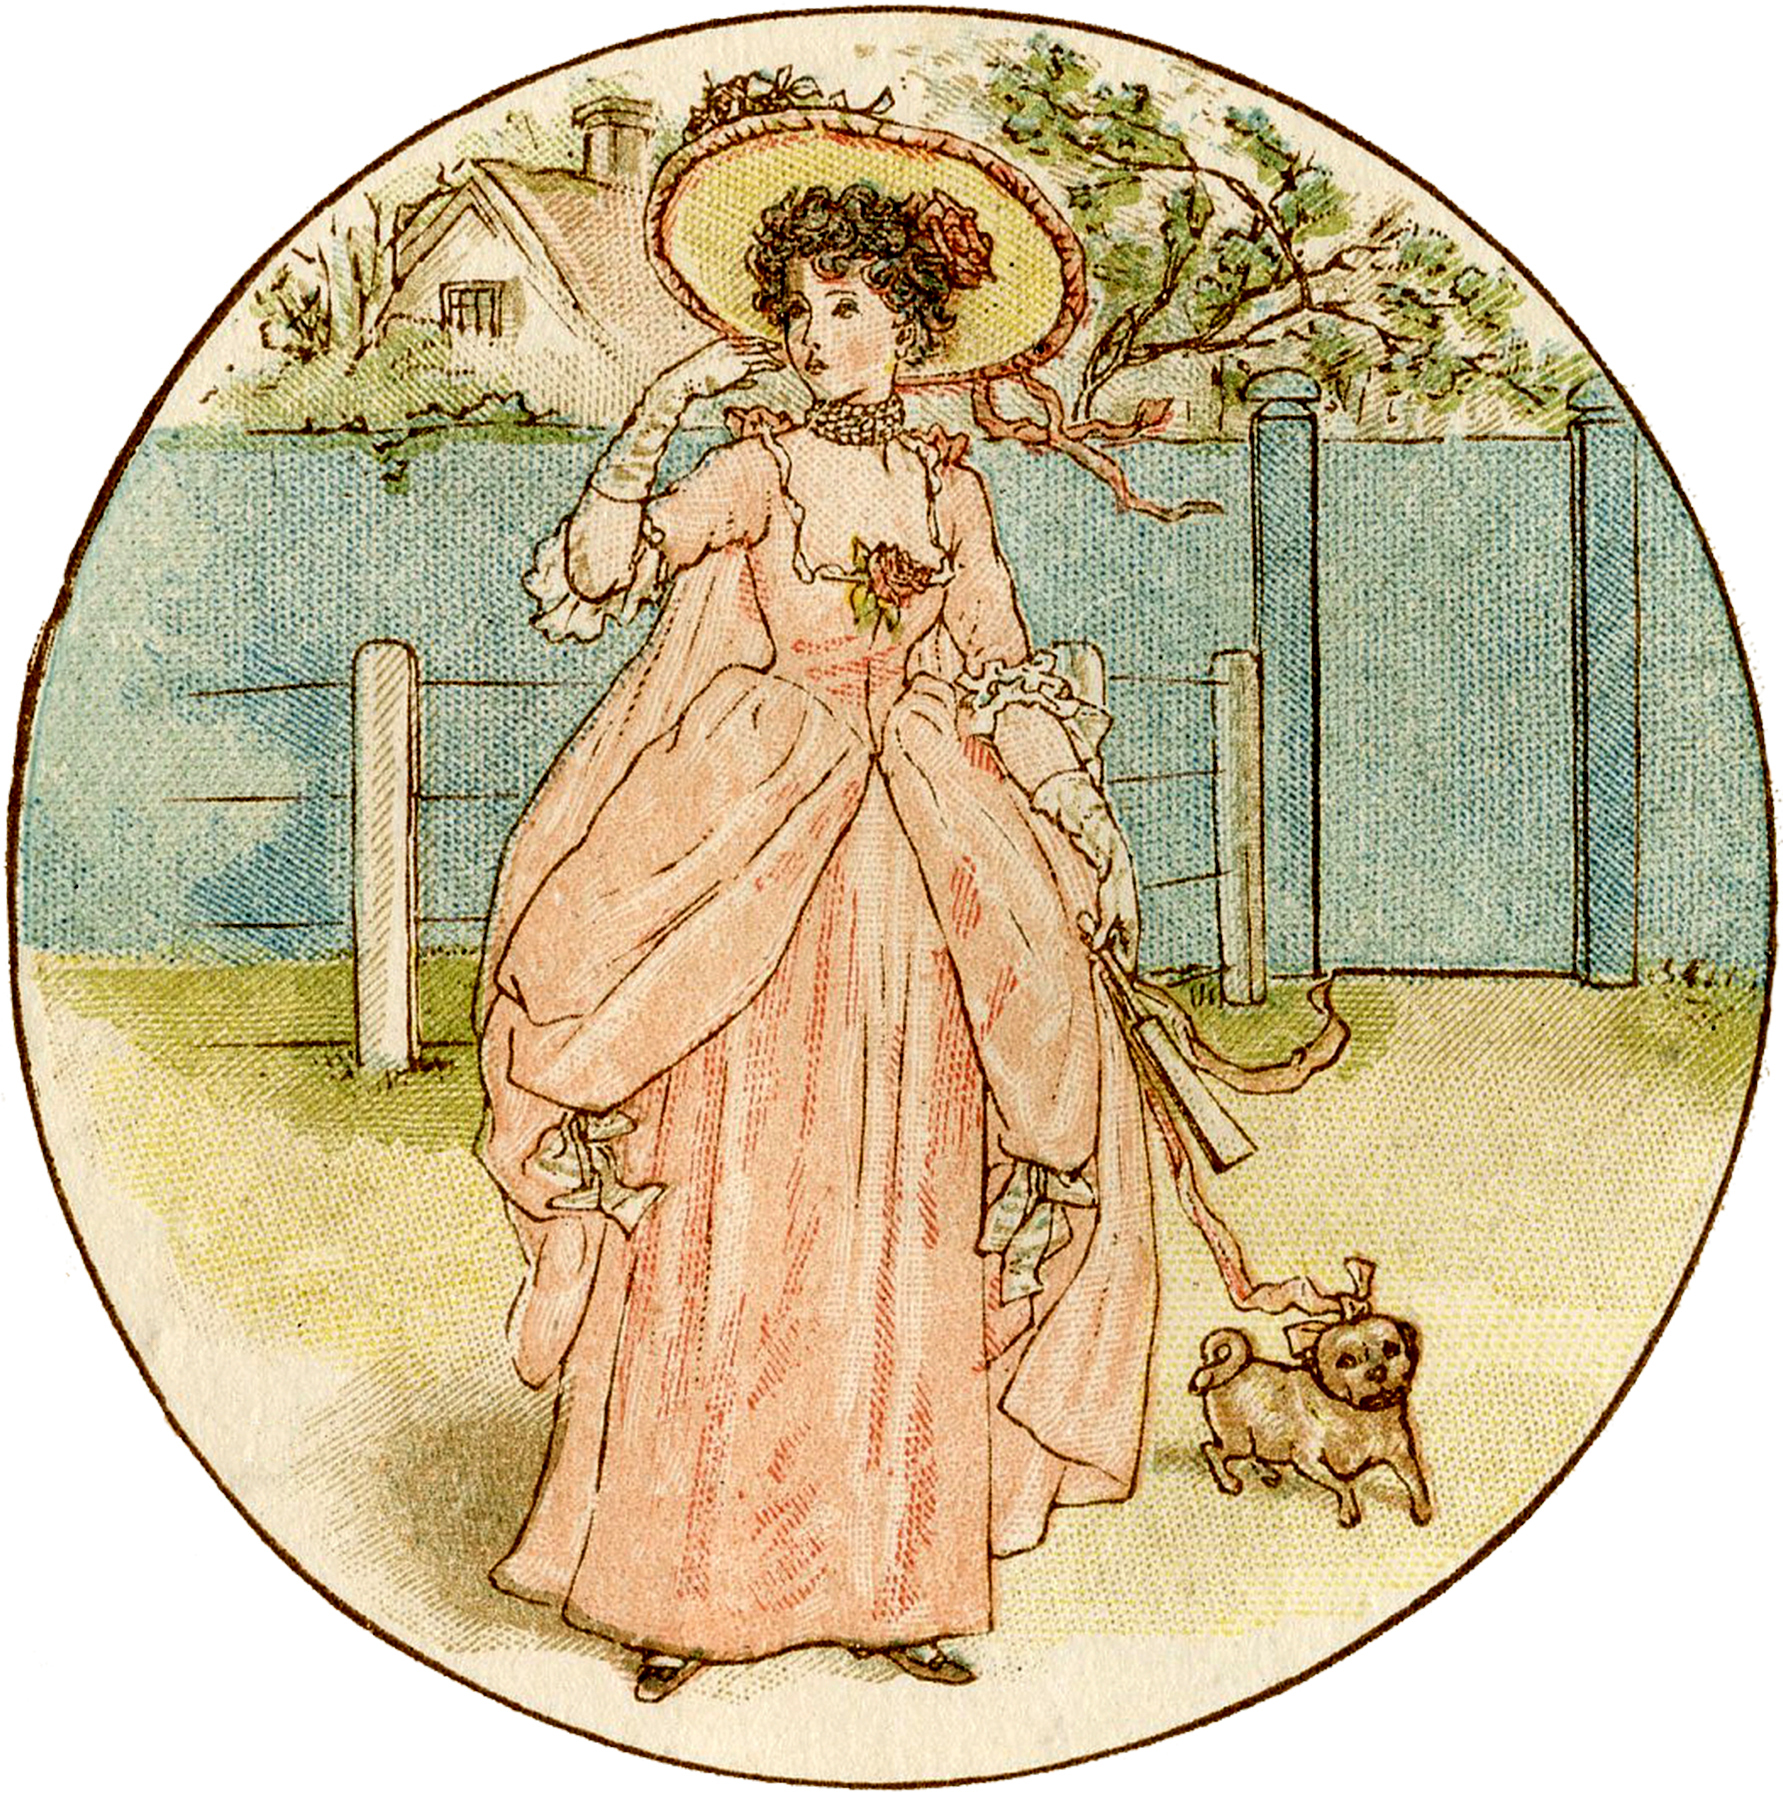 Precious Girl with Dog Picture - Kate Greenaway!